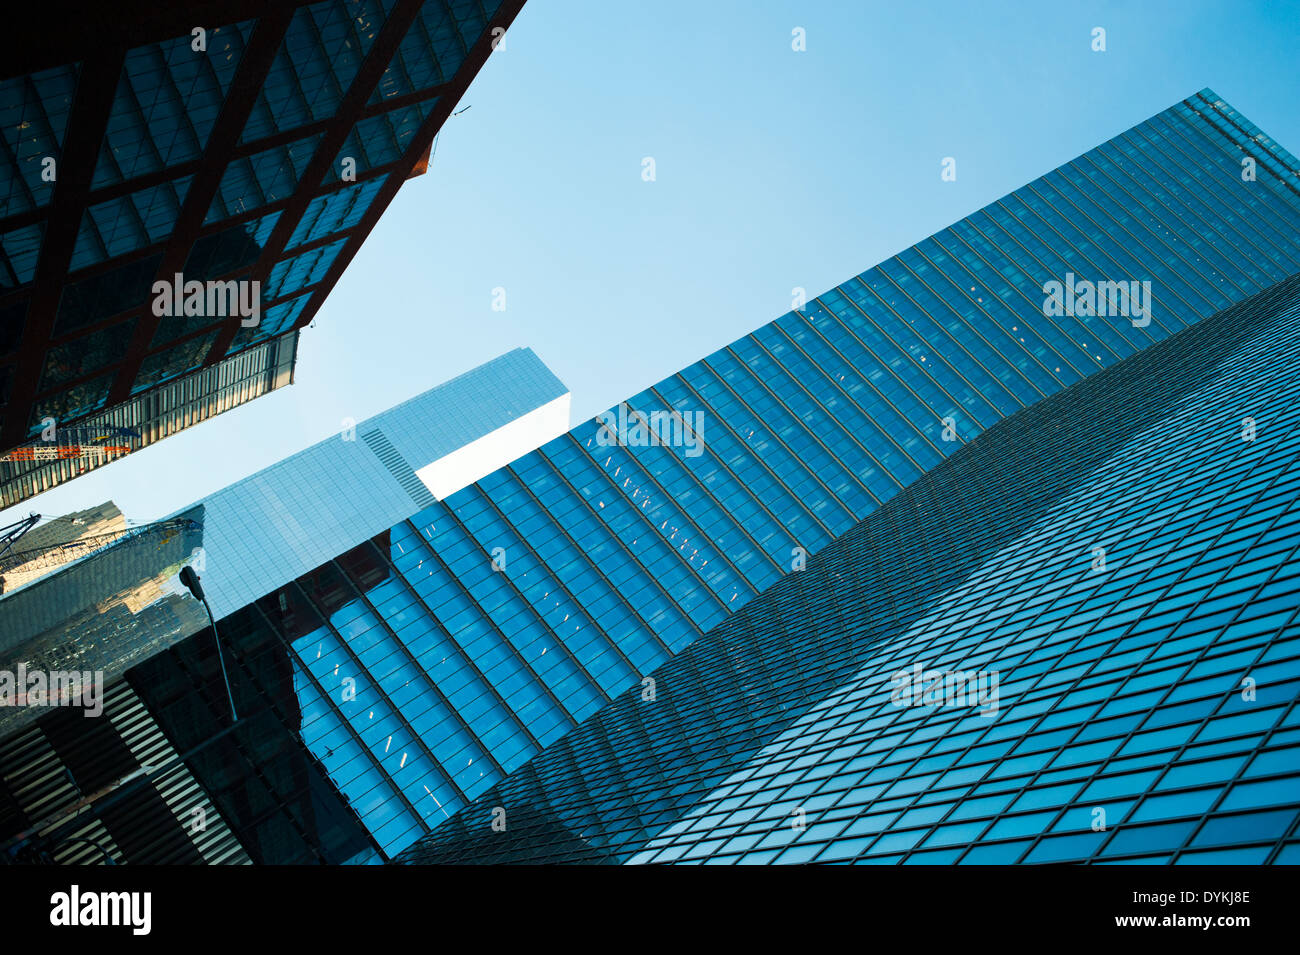 Tall glass buildings in Lower Manhattan, downtown New York City - Stock Image